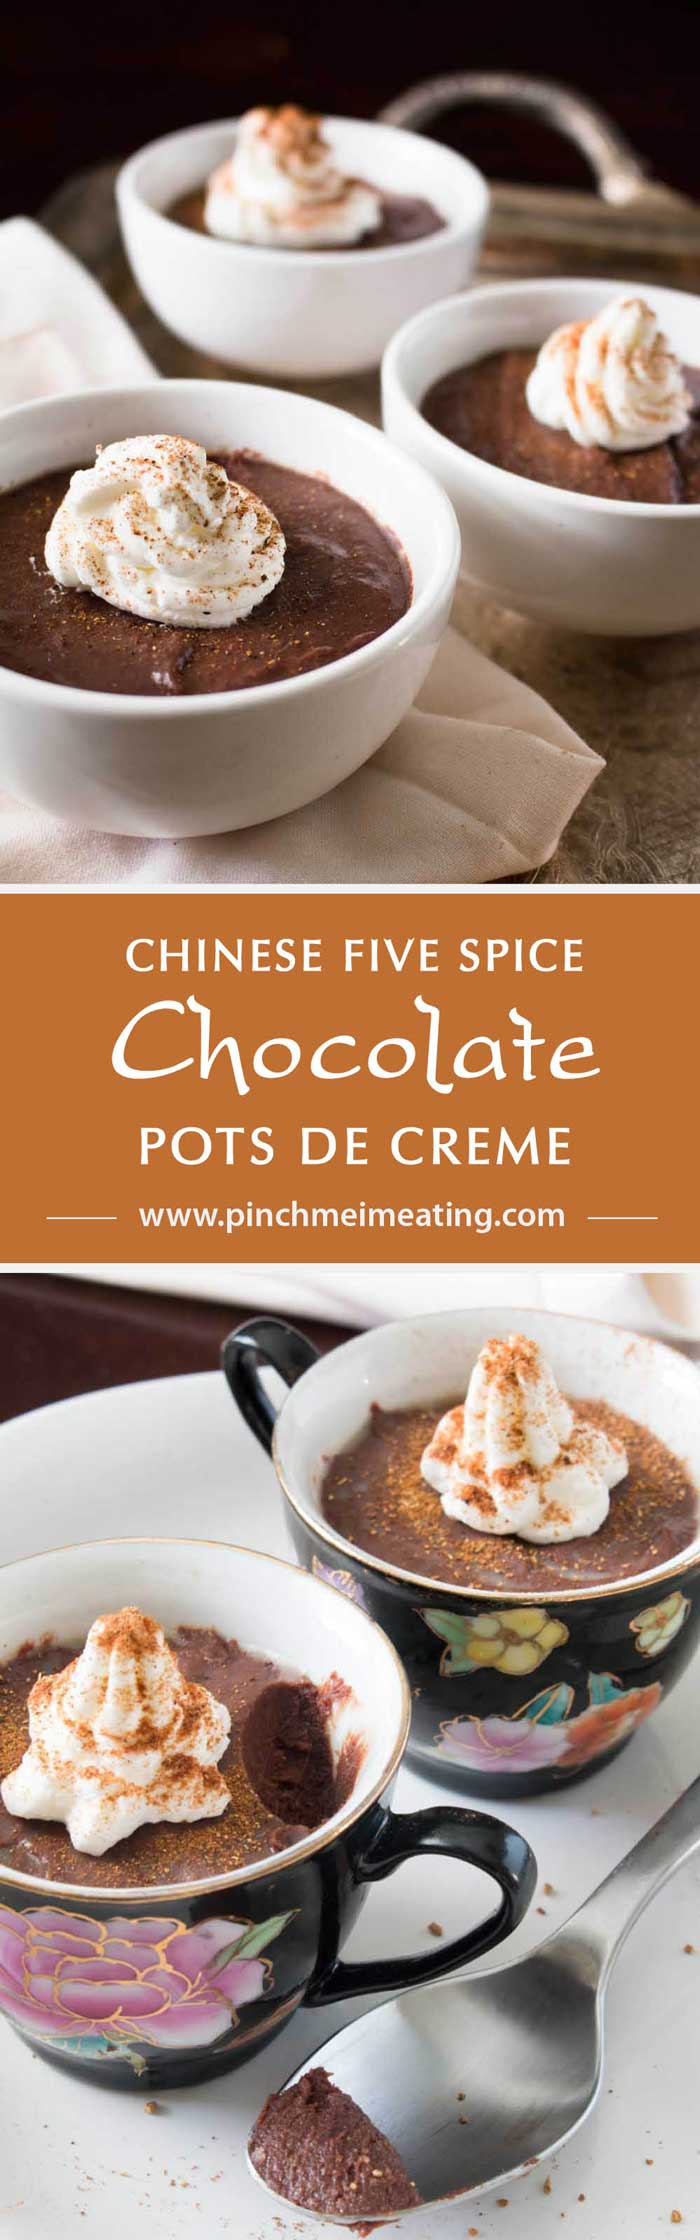 Chinese Five Spice Chocolate Pots de Creme - Smooth custard is infused with a blend of anise, cloves, cinnamon, fennel, and pepper. A romantic make-ahead dessert perfect for Valentine's Day. | www.pinchmeimeating.com